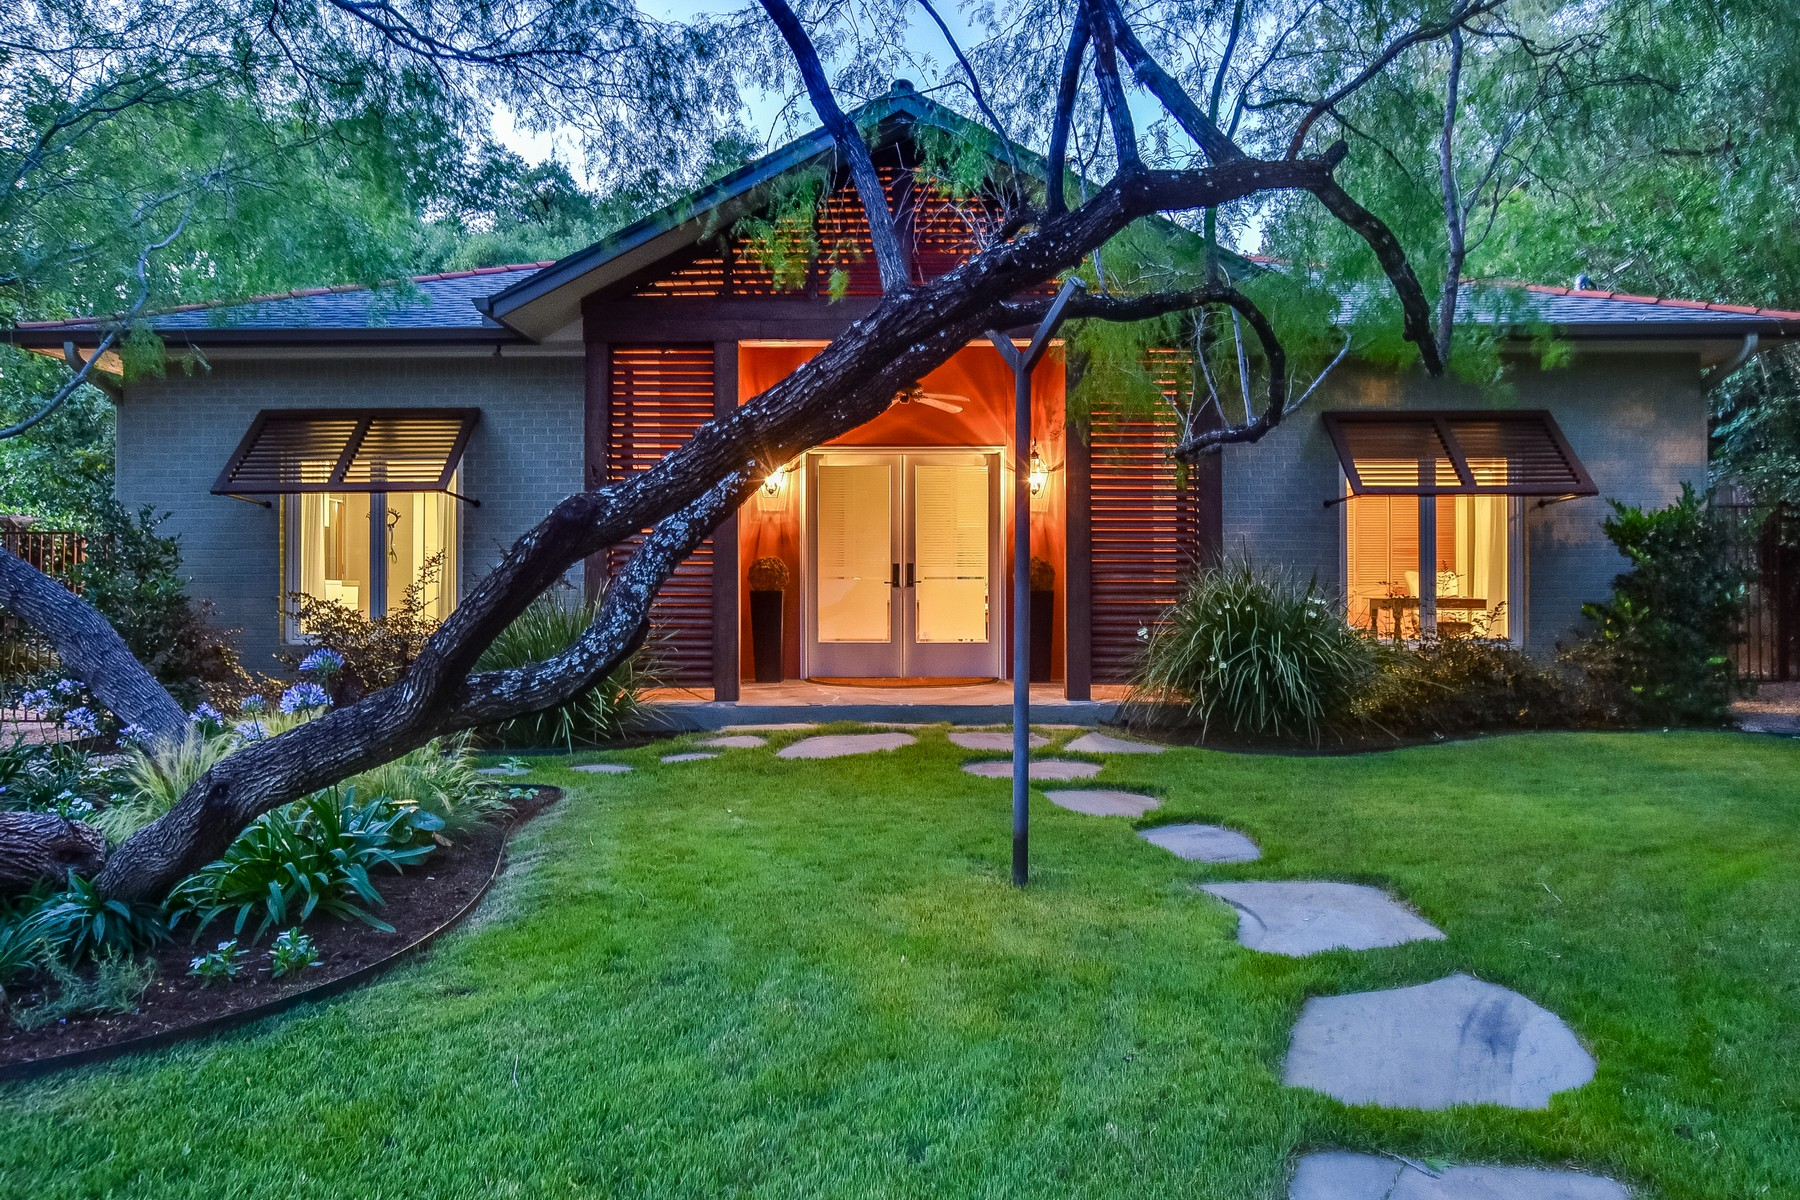 Single Family Home for Sale at Unique Remodeled Central Austin Home 2404 Shoalmont Austin, Texas 78756 United States